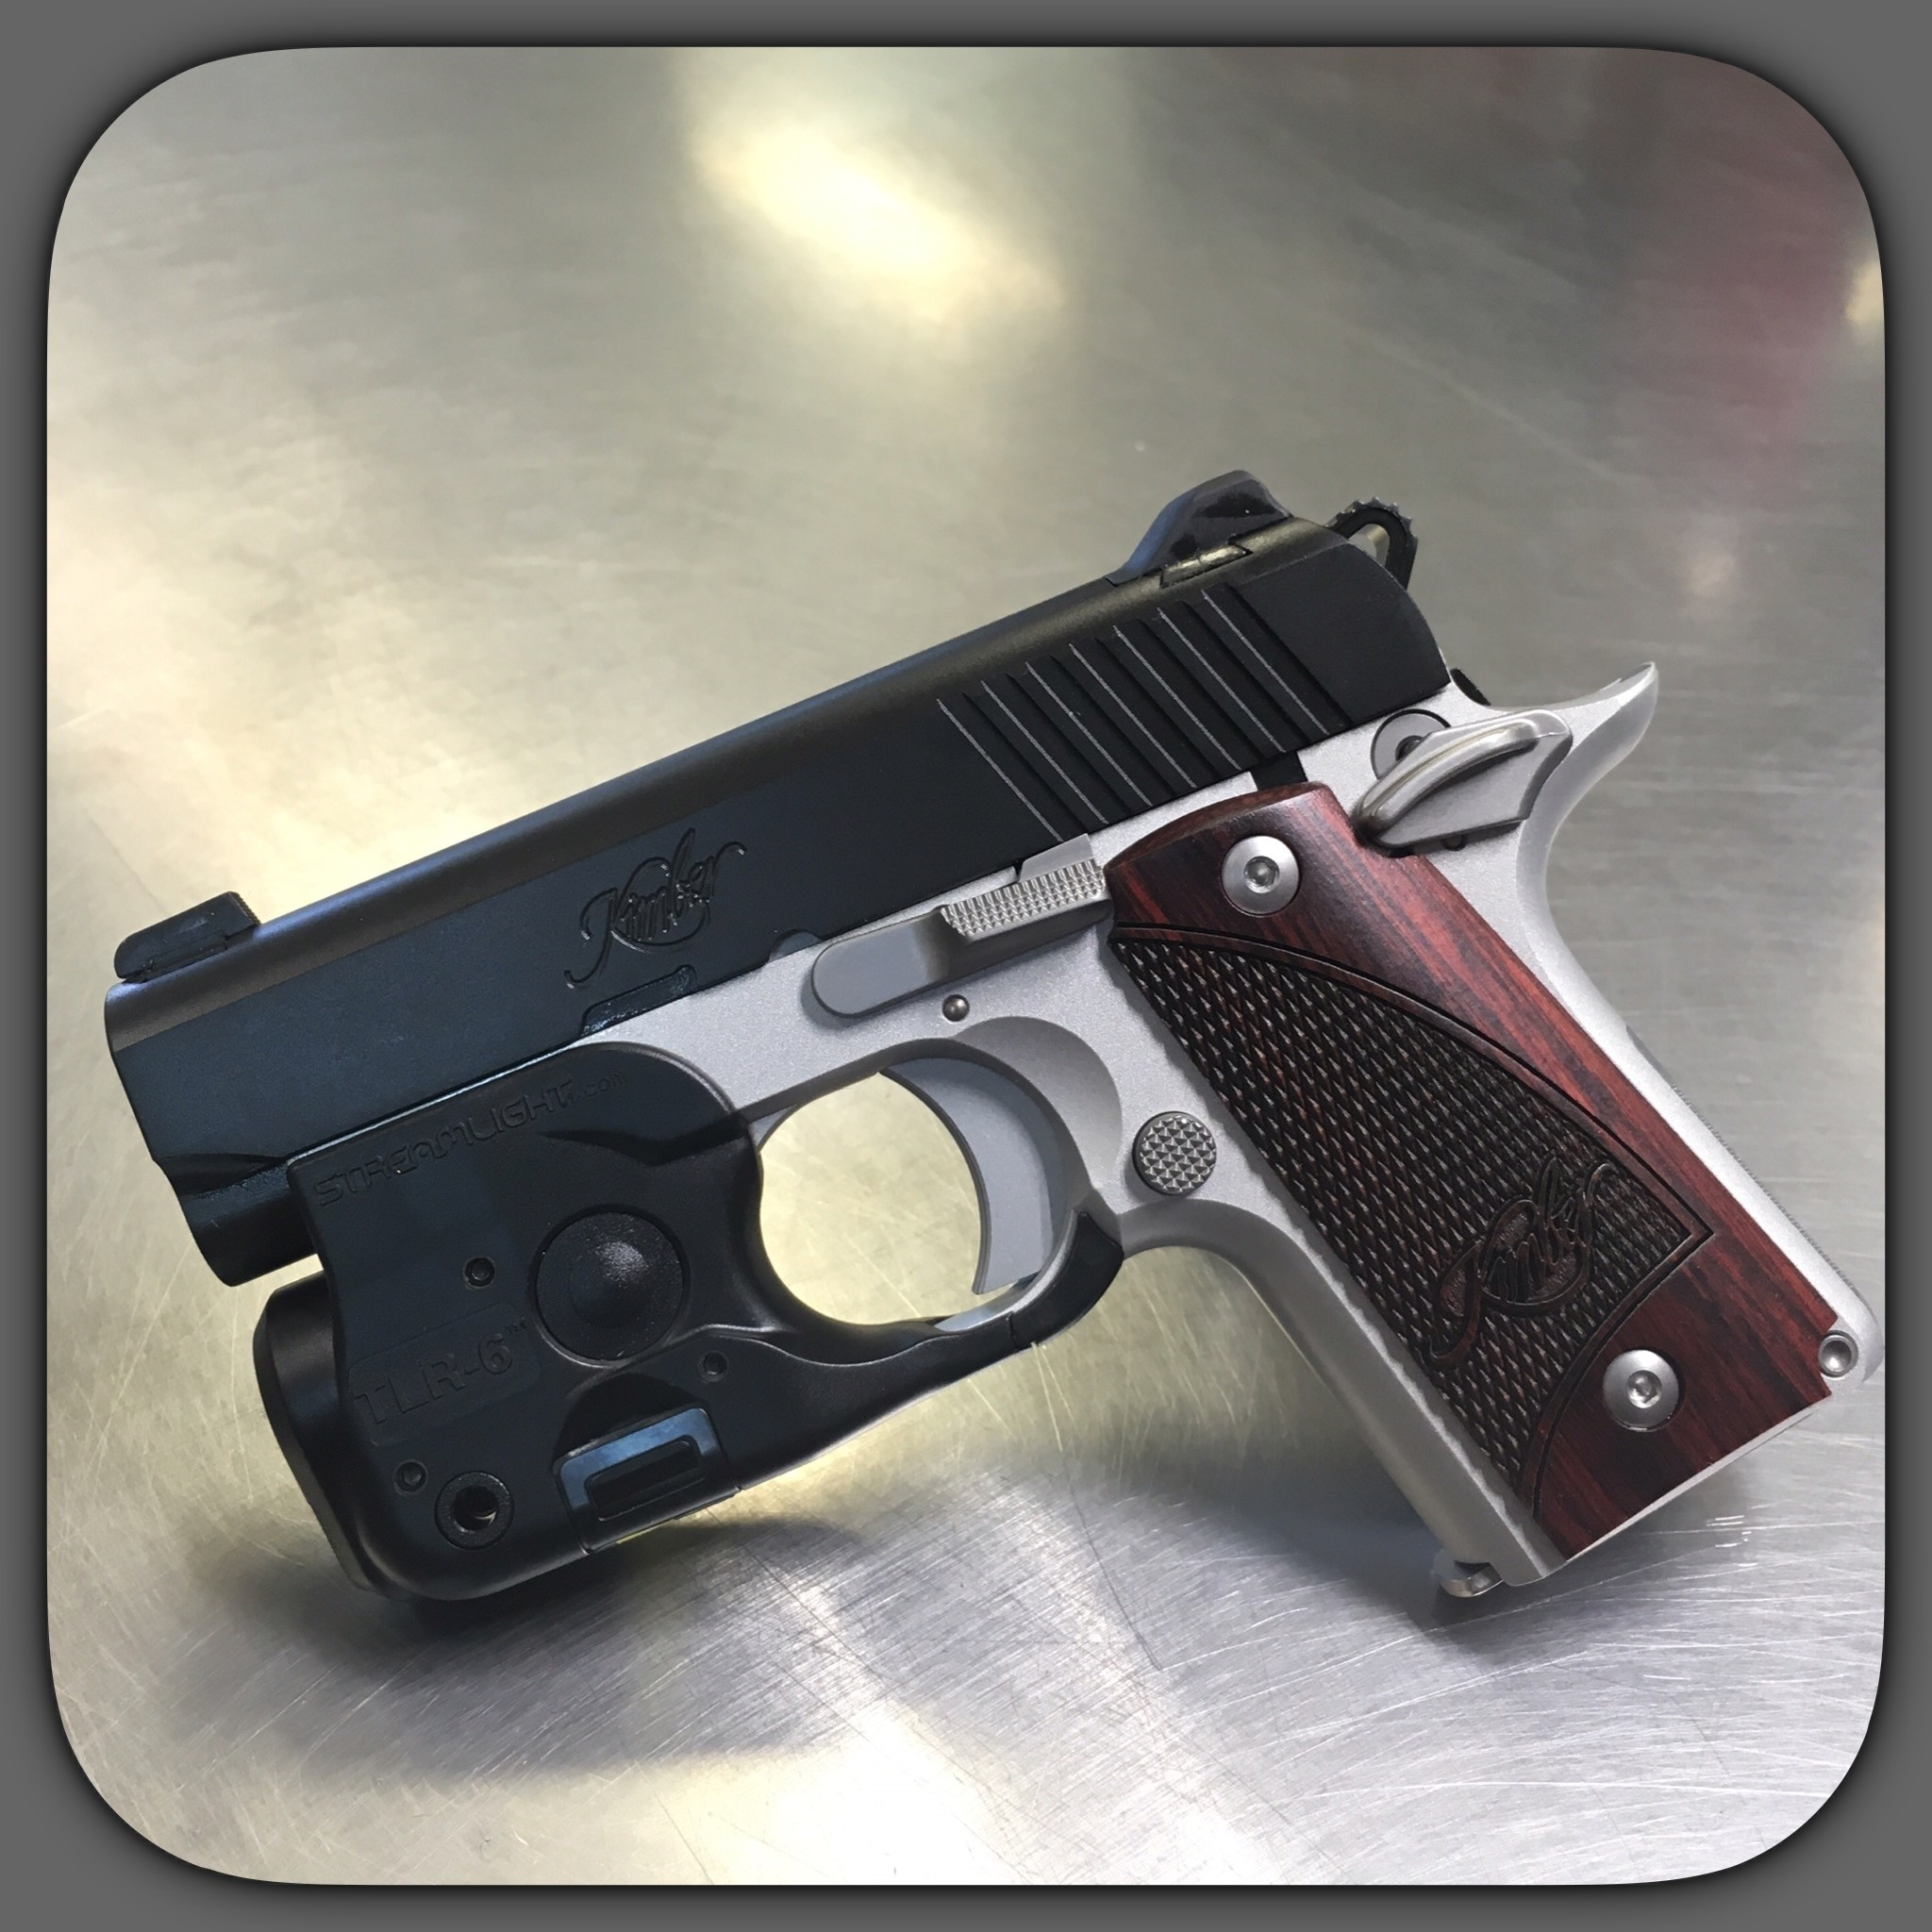 Kimber Micro 380 Two Tone Pistol With Streamlight Tlr 6